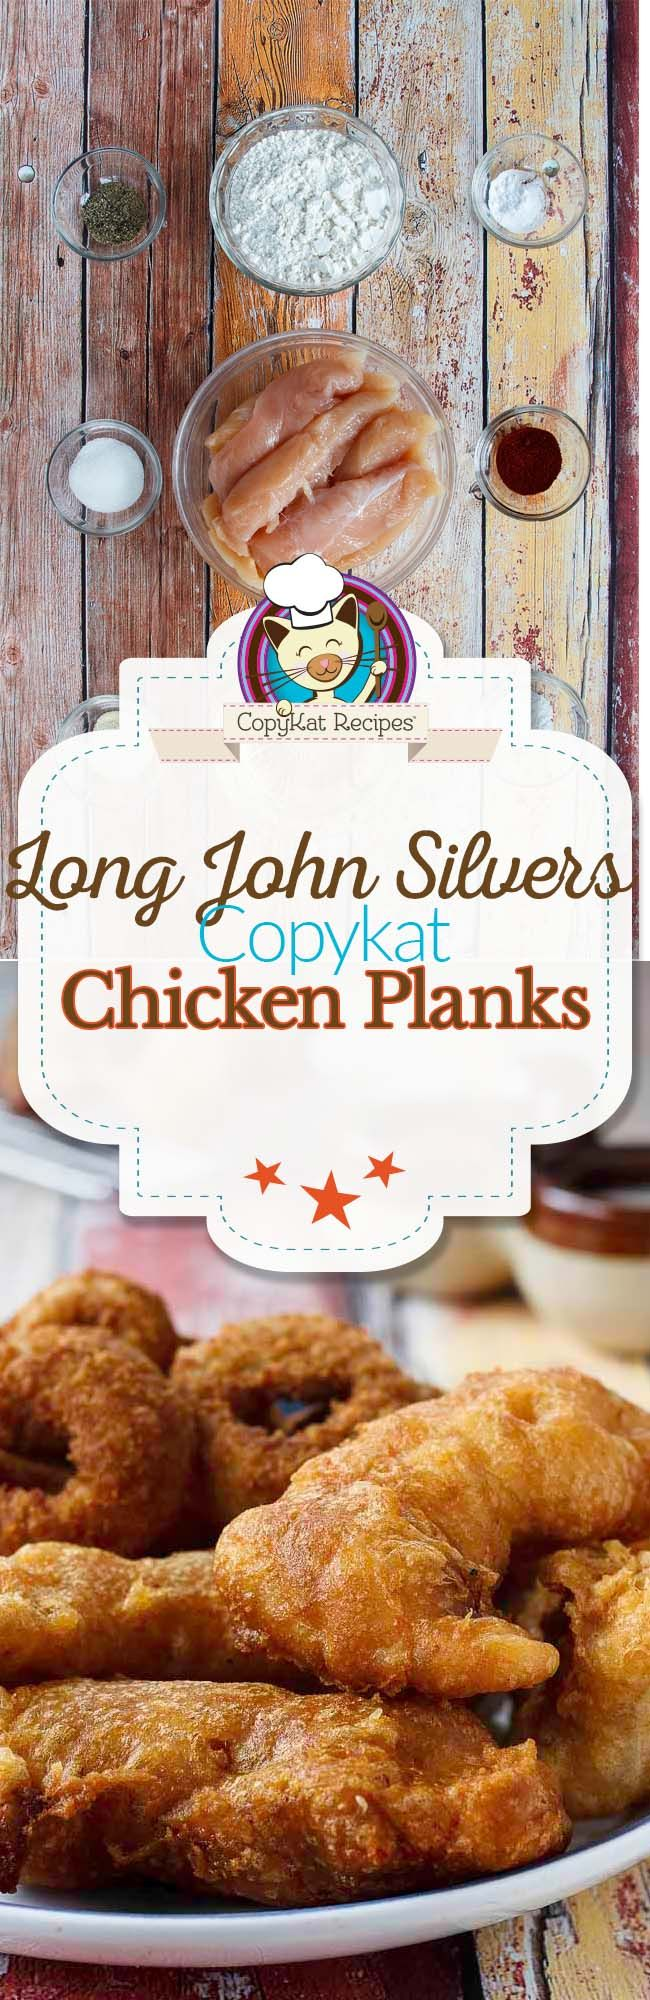 Make your own homemade Long John Silvers Chicken Planks with this easy copycat recipe.